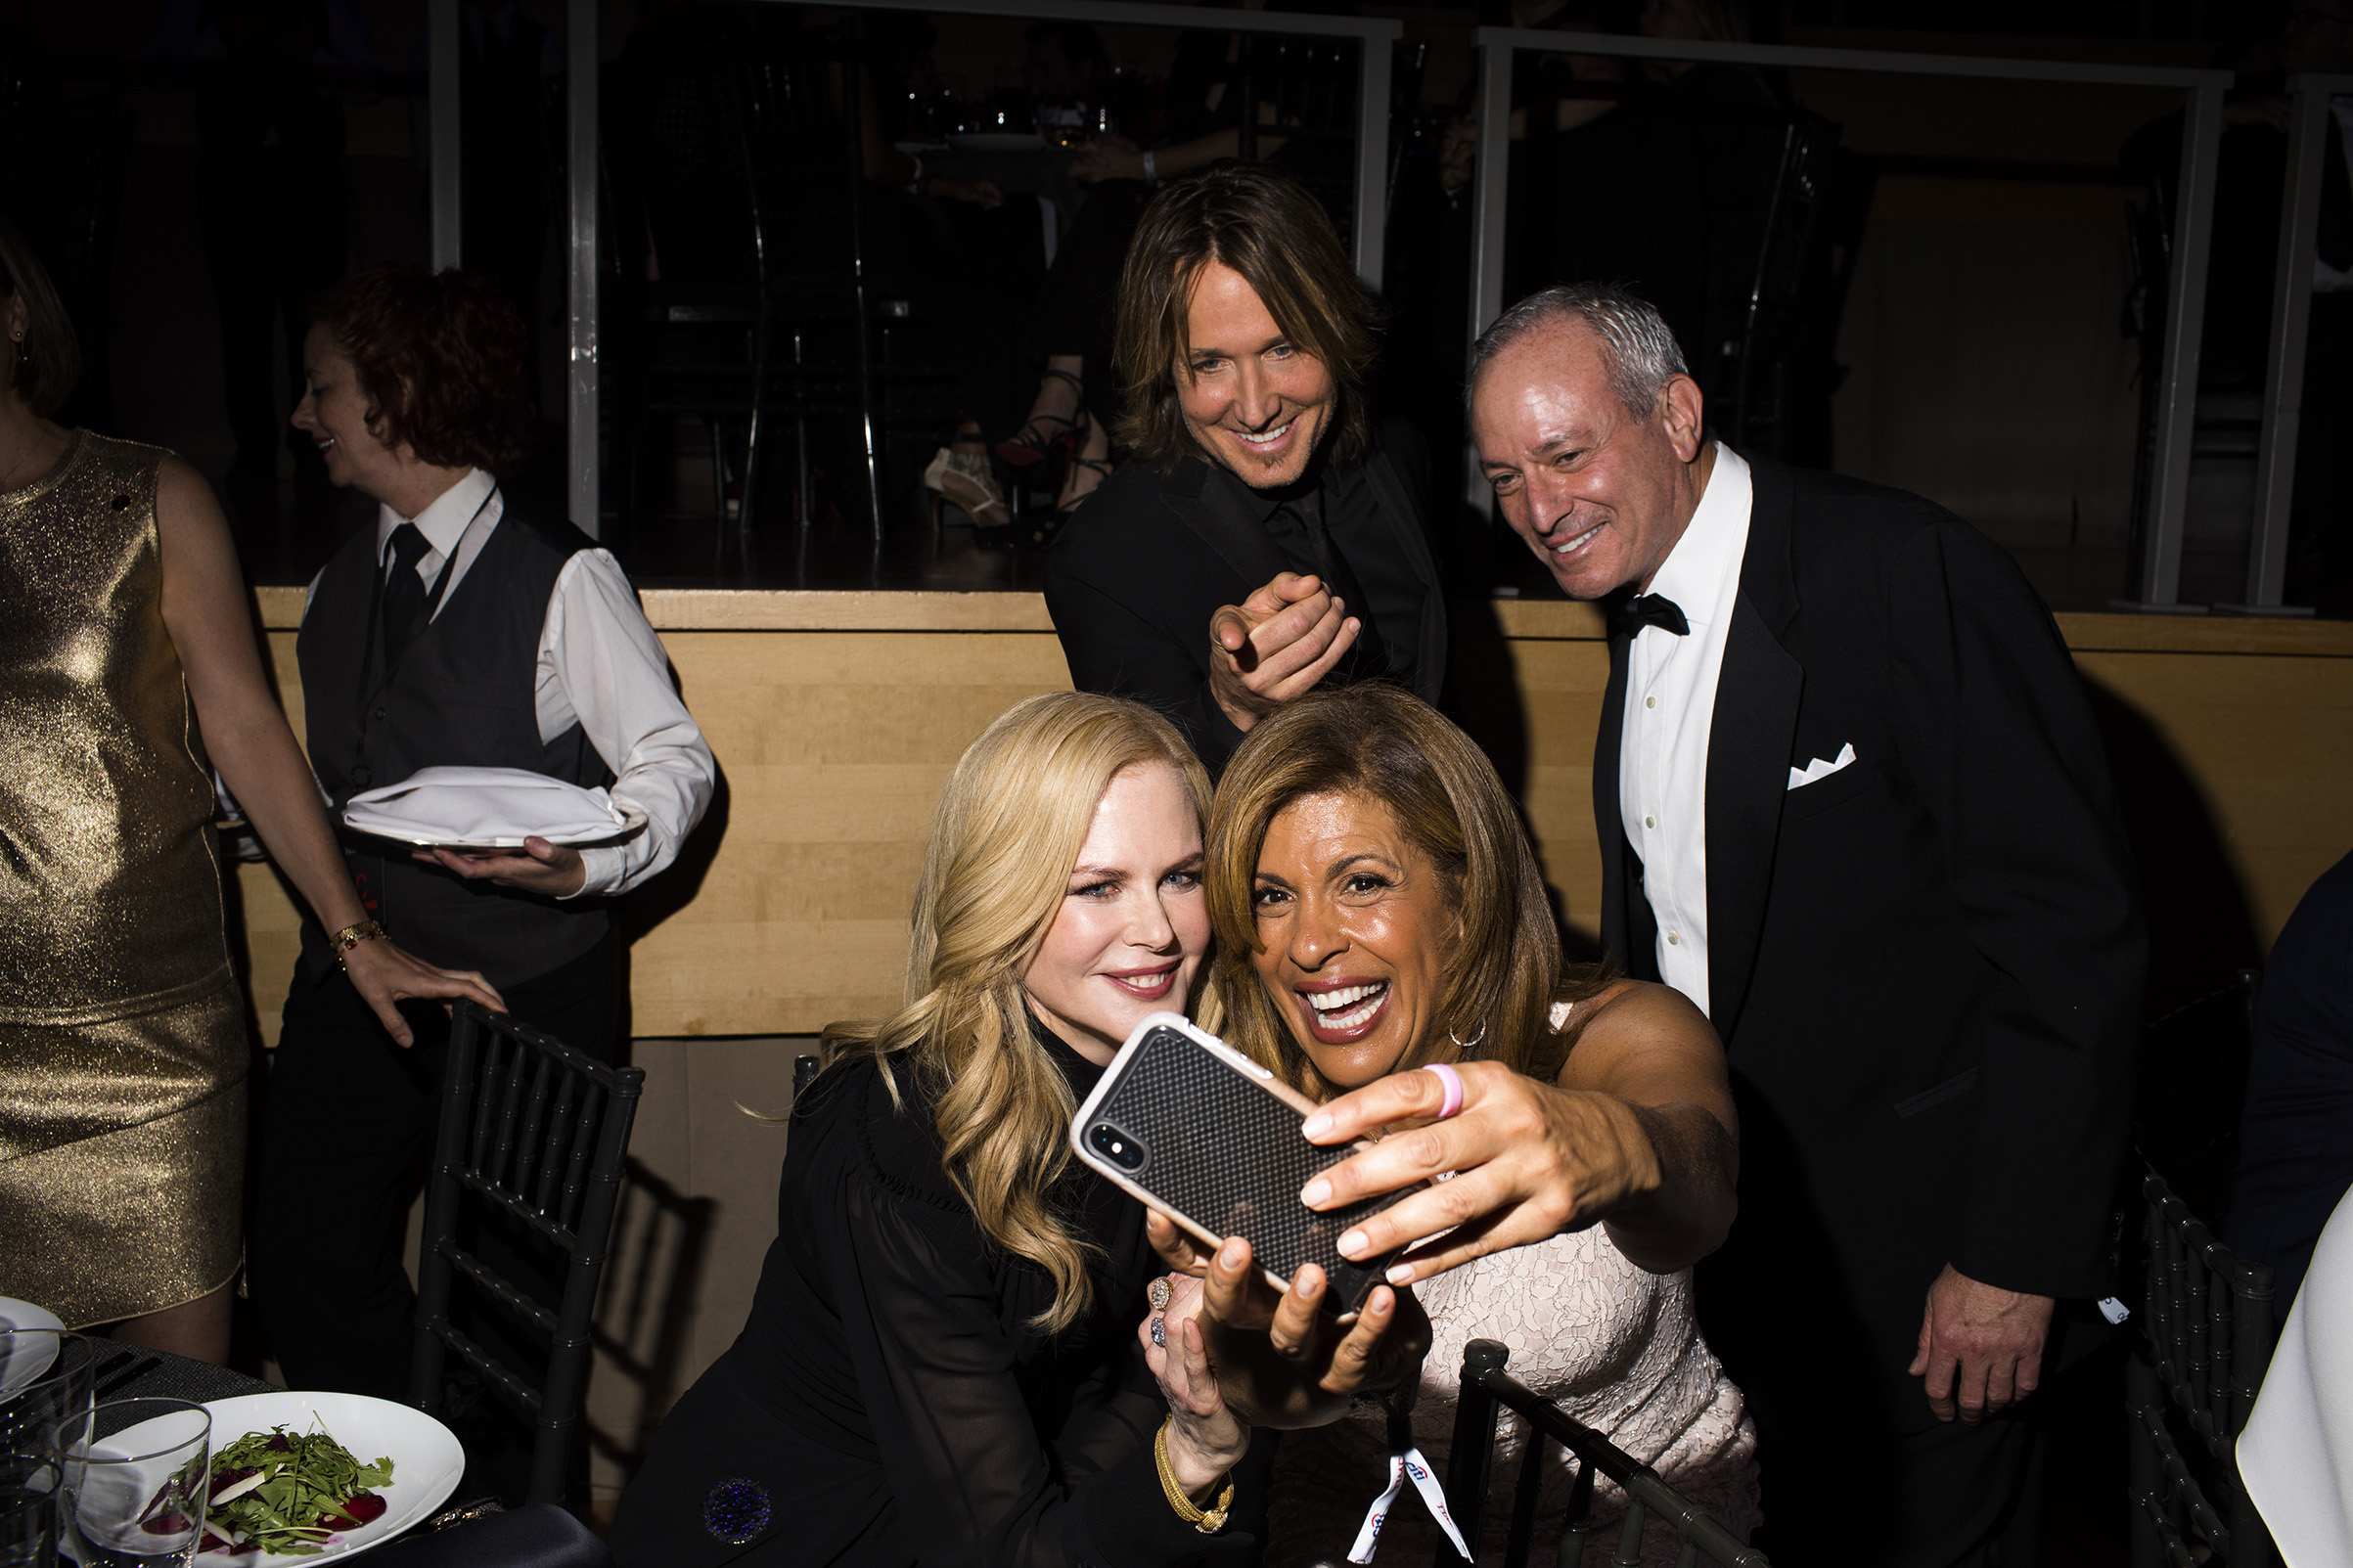 Nicole Kidman, Hoda Kotb, Keith Urban and Joel Schiffman take a photo at the Time 100 Gala at Jazz at Lincoln Center on April 24, 2018 in New York City.